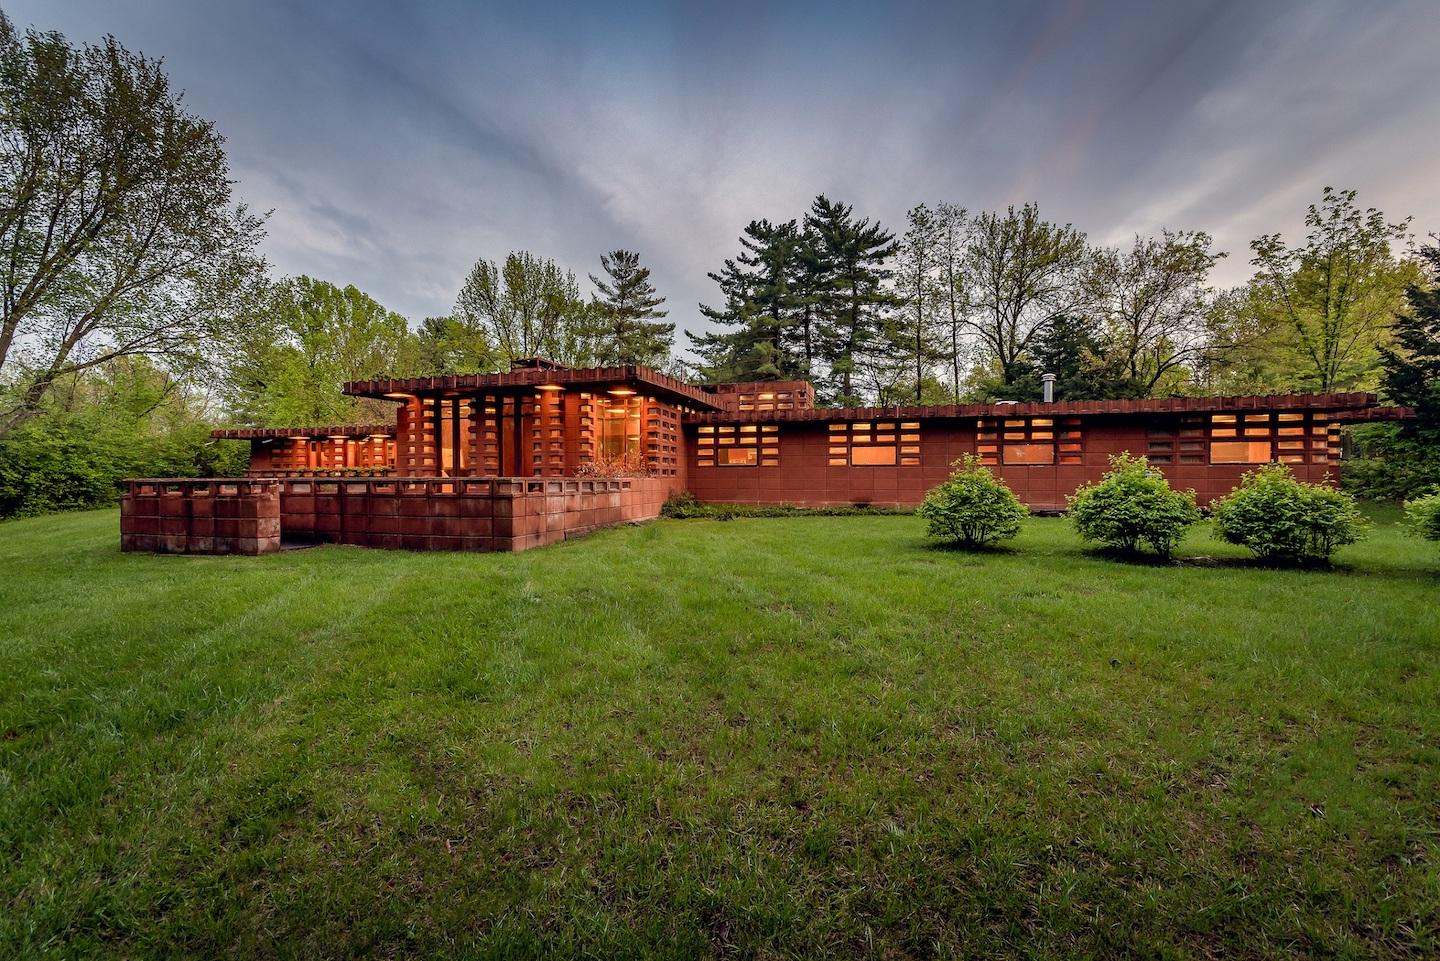 This historic property will be available to purchase for the first time ever, presenting a once-in-a-lifetime opportunity for someone to own a Frank Lloyd Wright home.